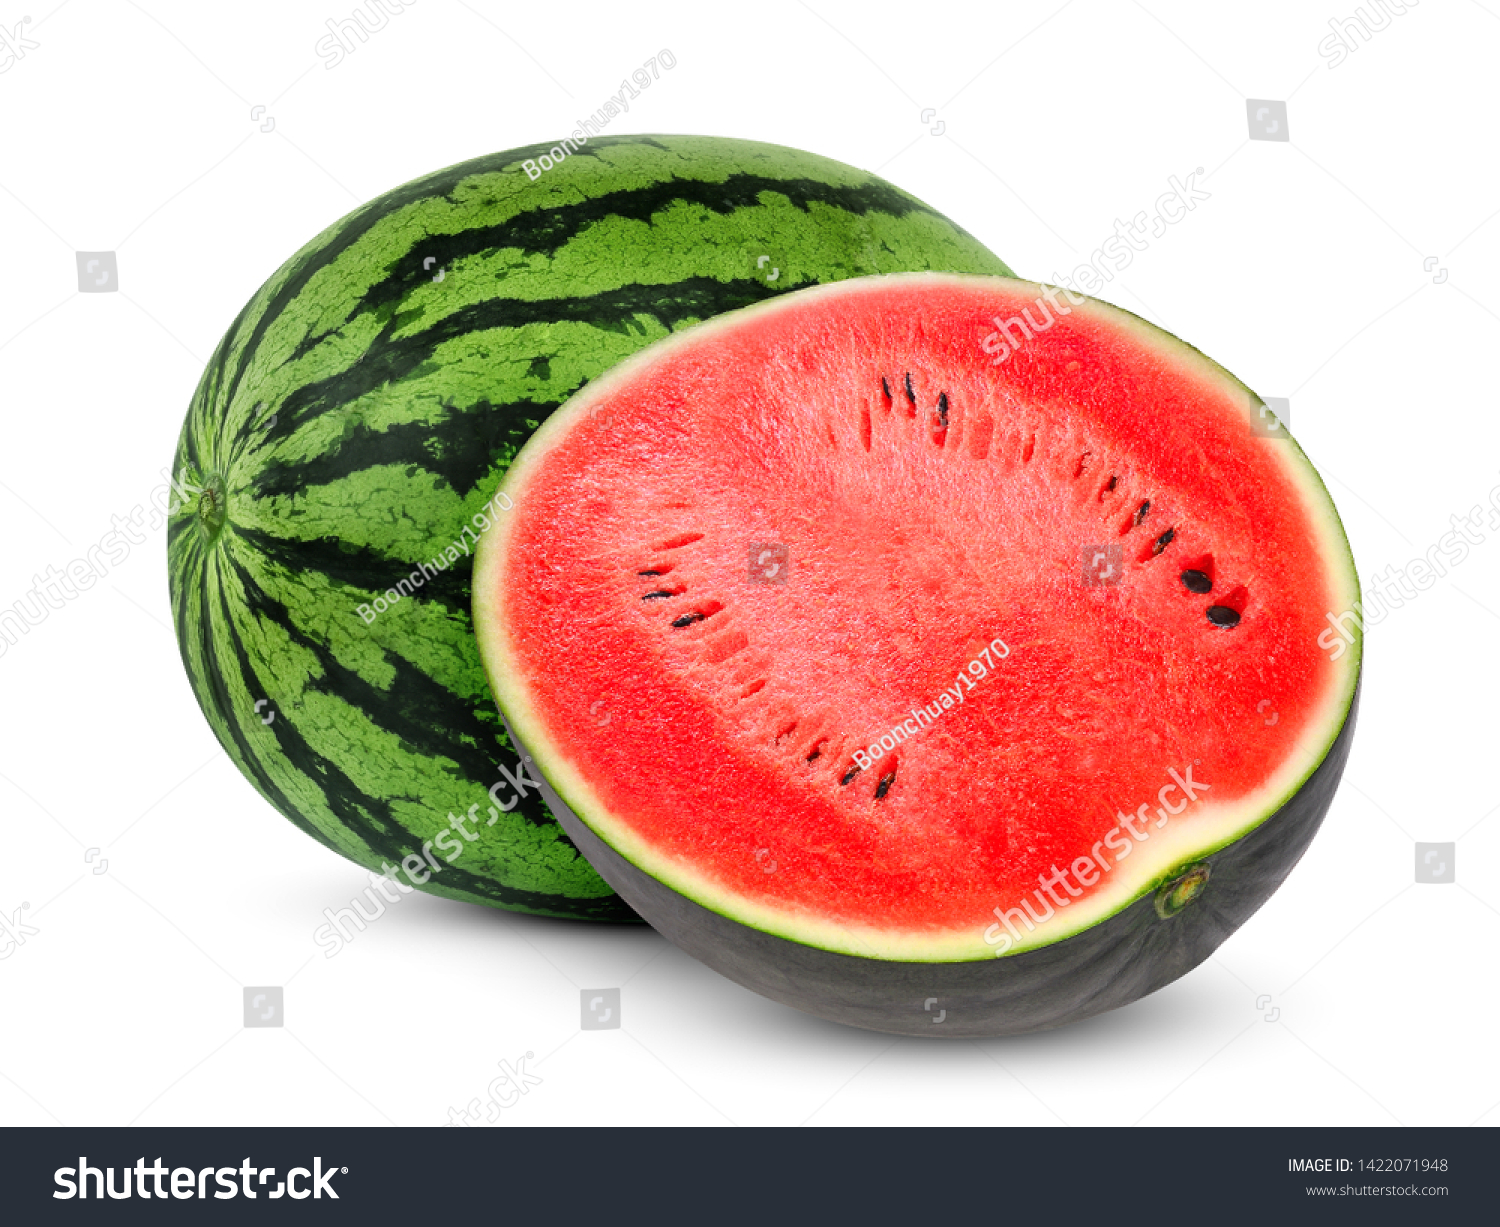 whole and half watermelon isolated on white background #1422071948